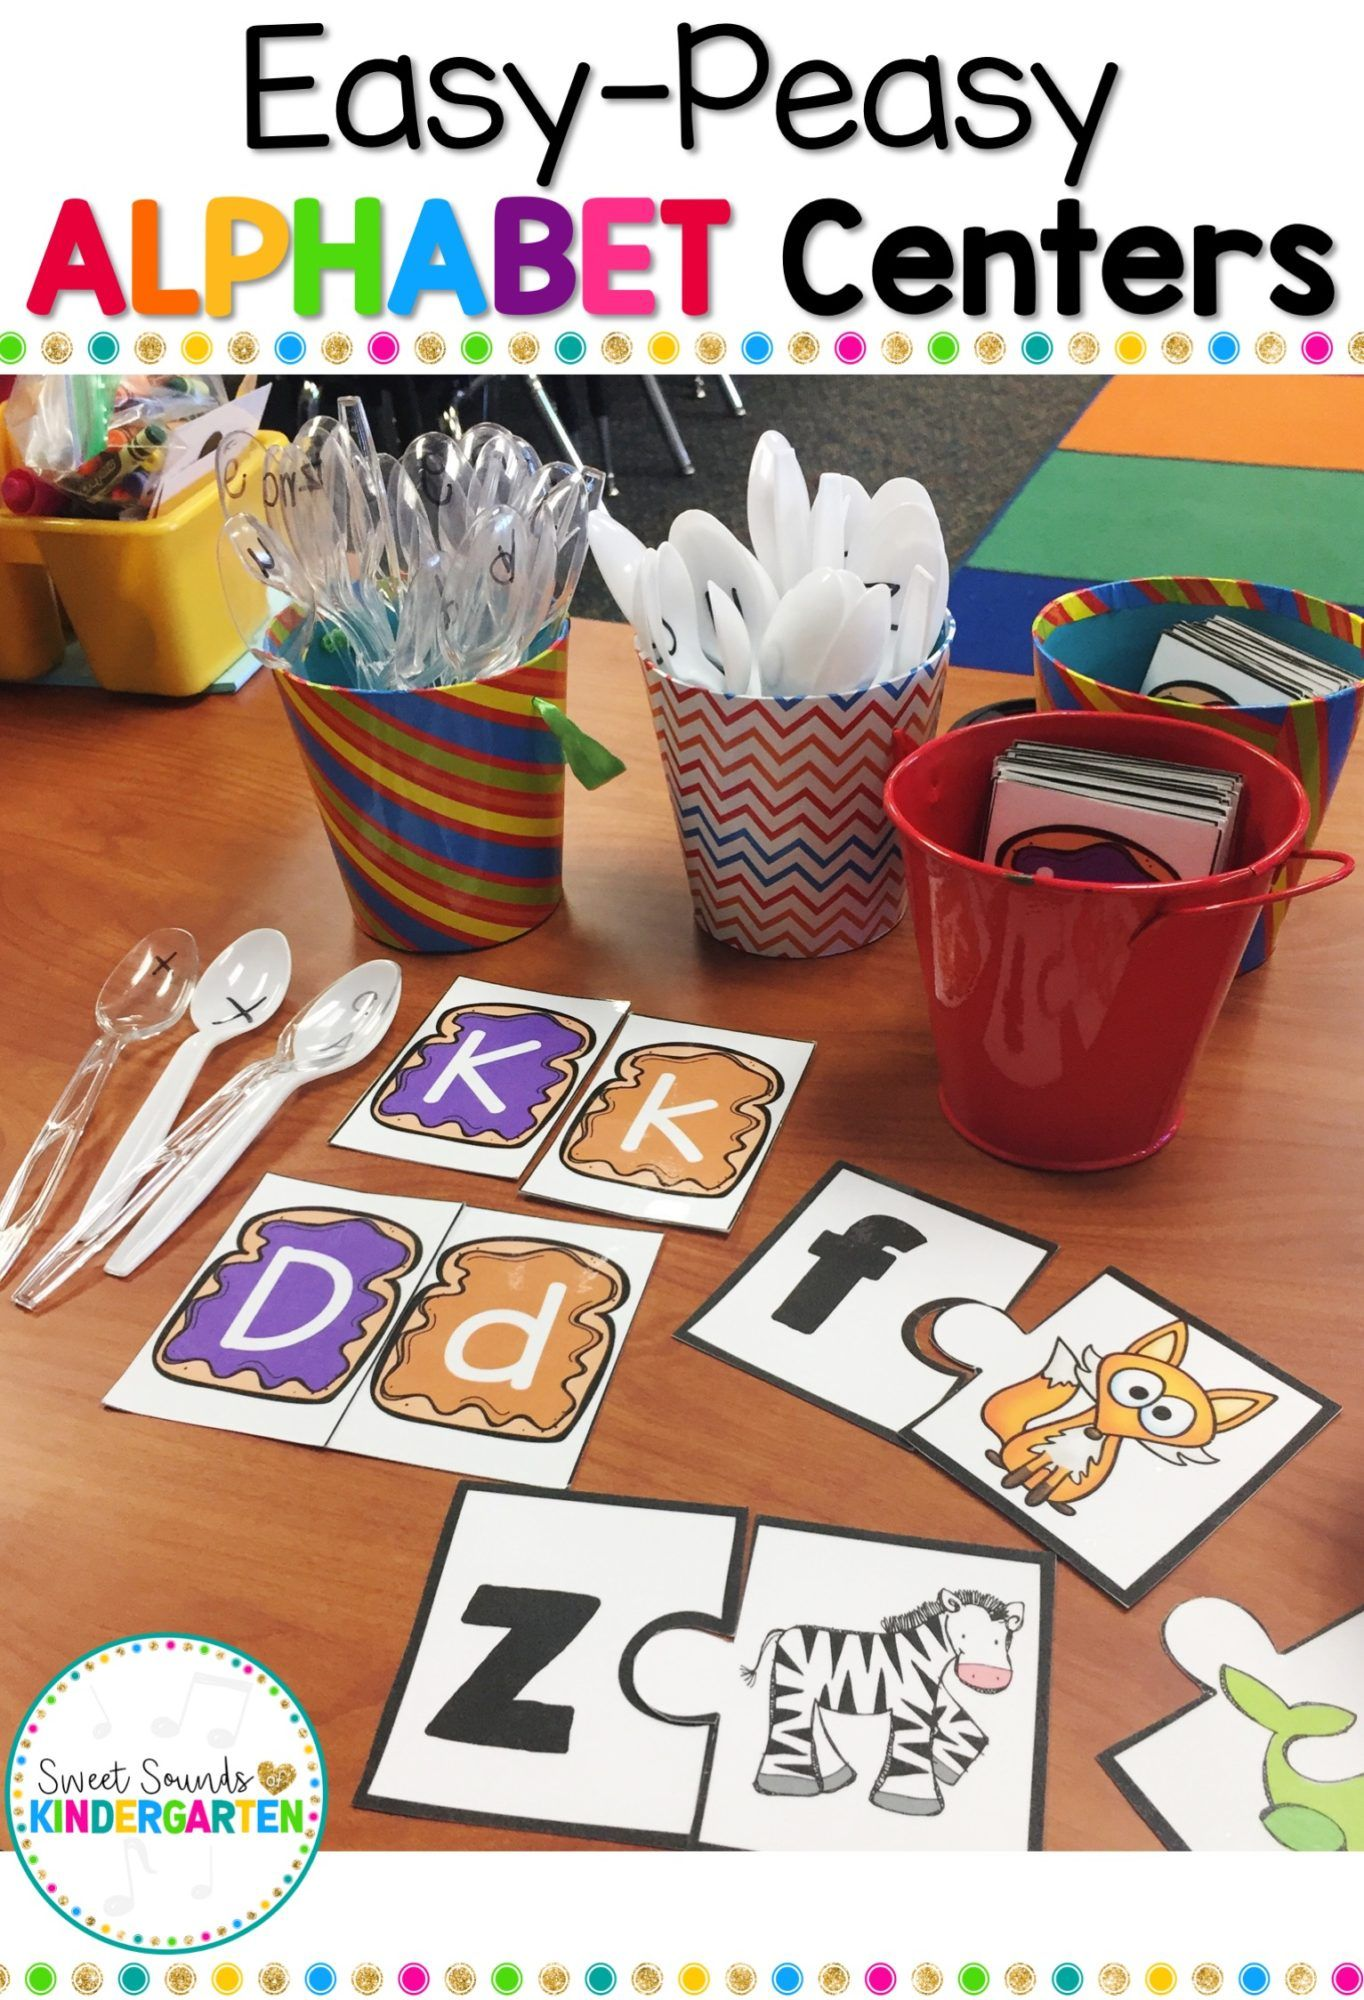 Easy Peasy Alphabet Centers